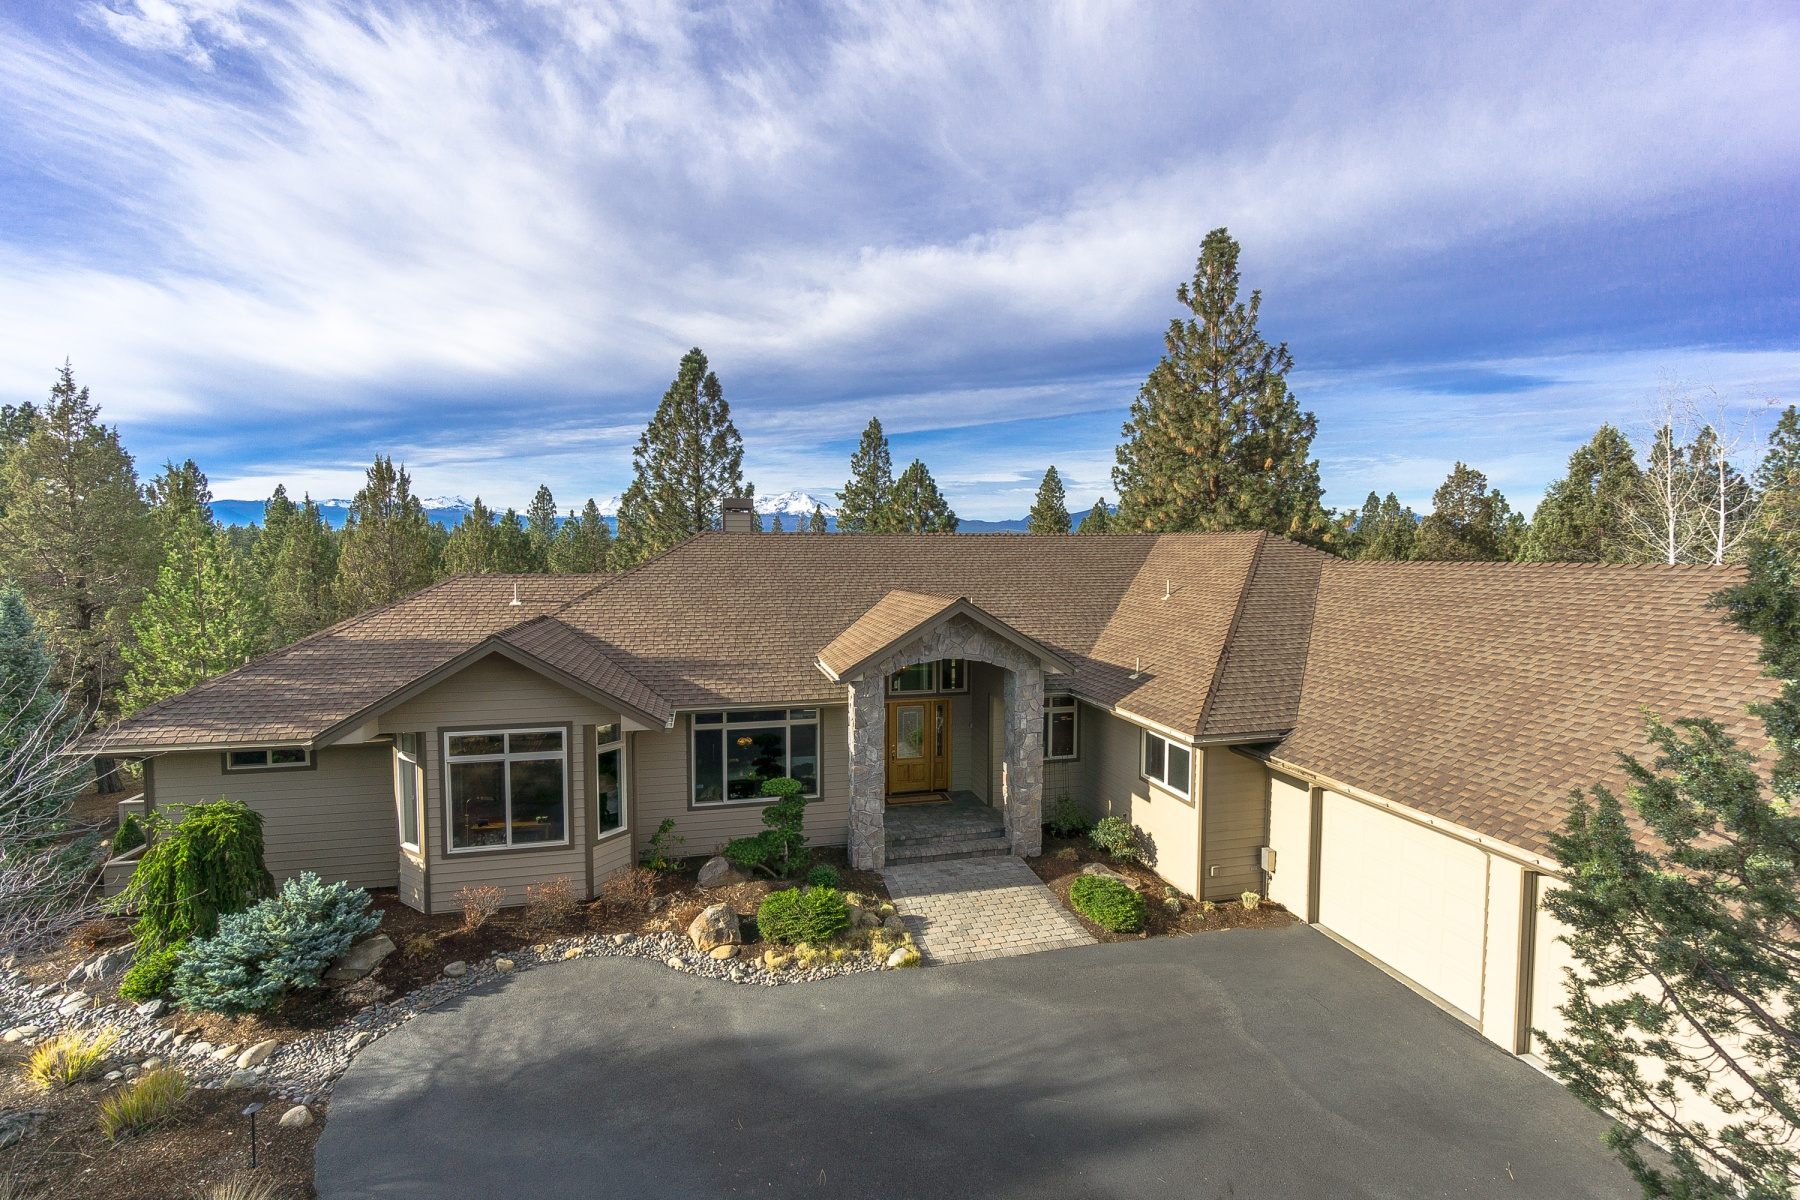 Single Family Home for Sale at Estates at Aspen Lakes Golf Course 16911 Lady Caroline Dr Sisters, Oregon, 97759 United States